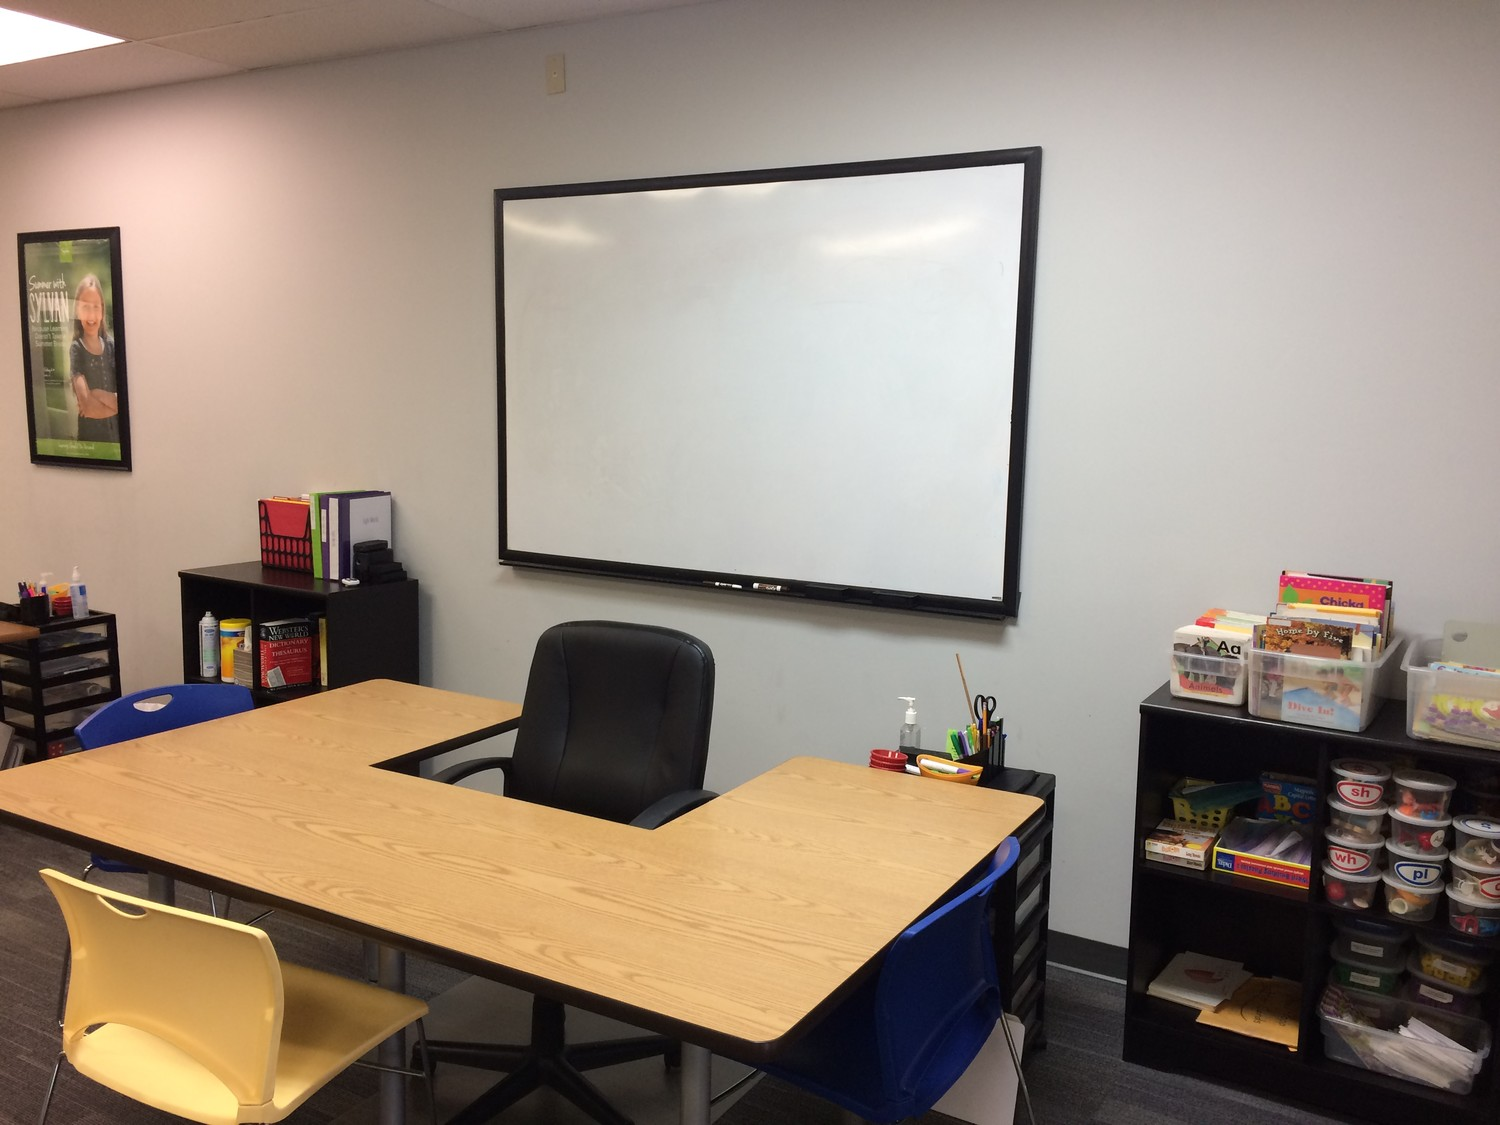 A whiteboard, desk and chair creates a classroom atmosphere at Sylvan Learning Center.